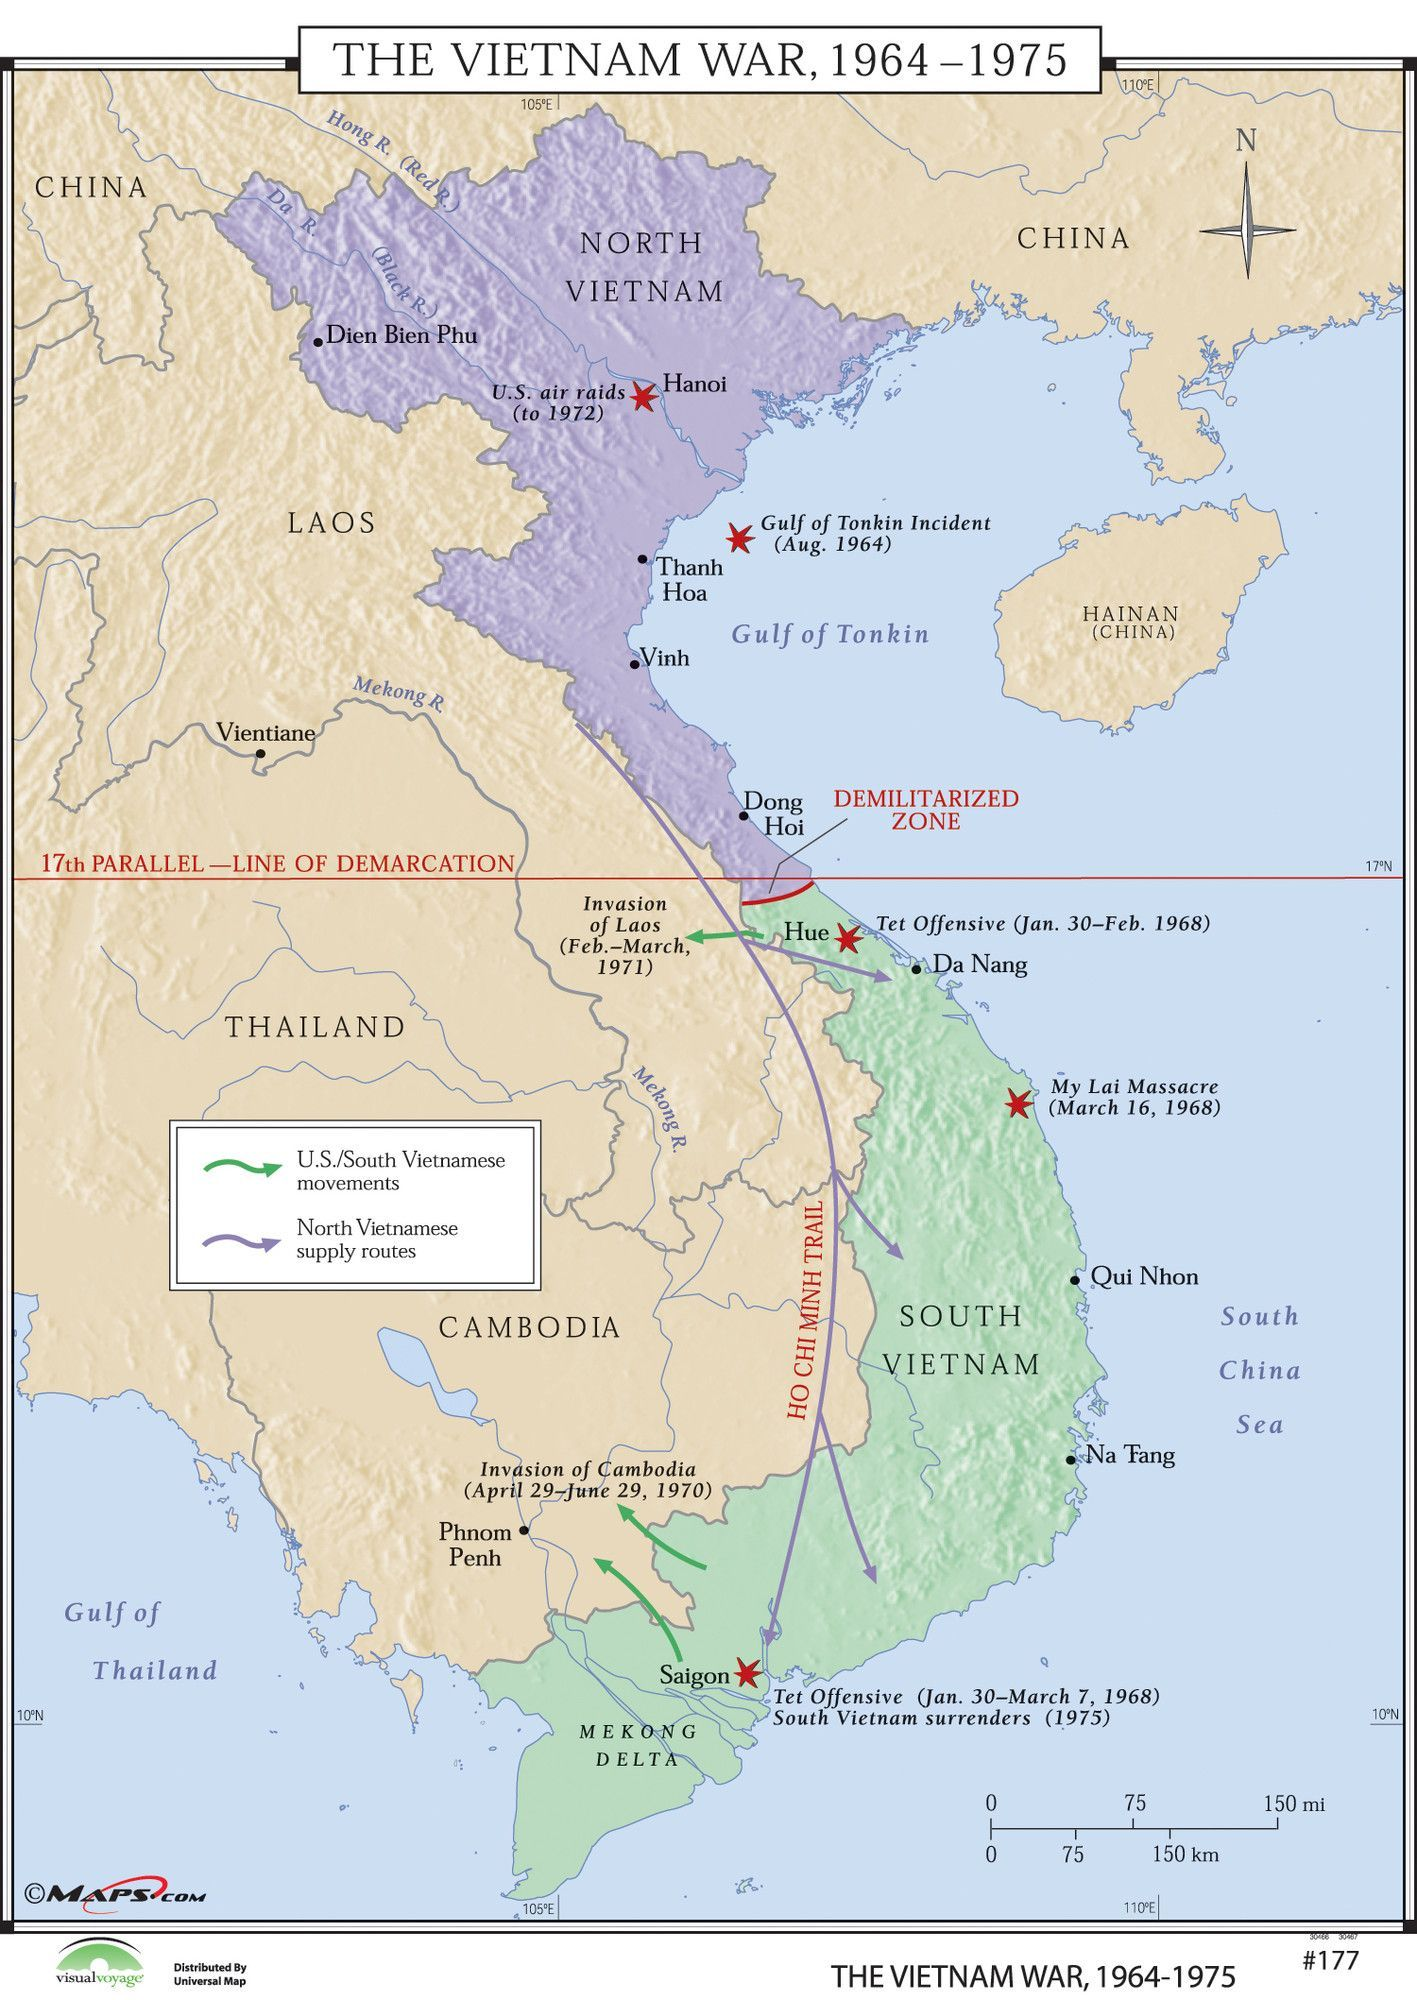 Map Of Major US Air Force Bases In South Vietnam During The - Map of us bases in south vietnam